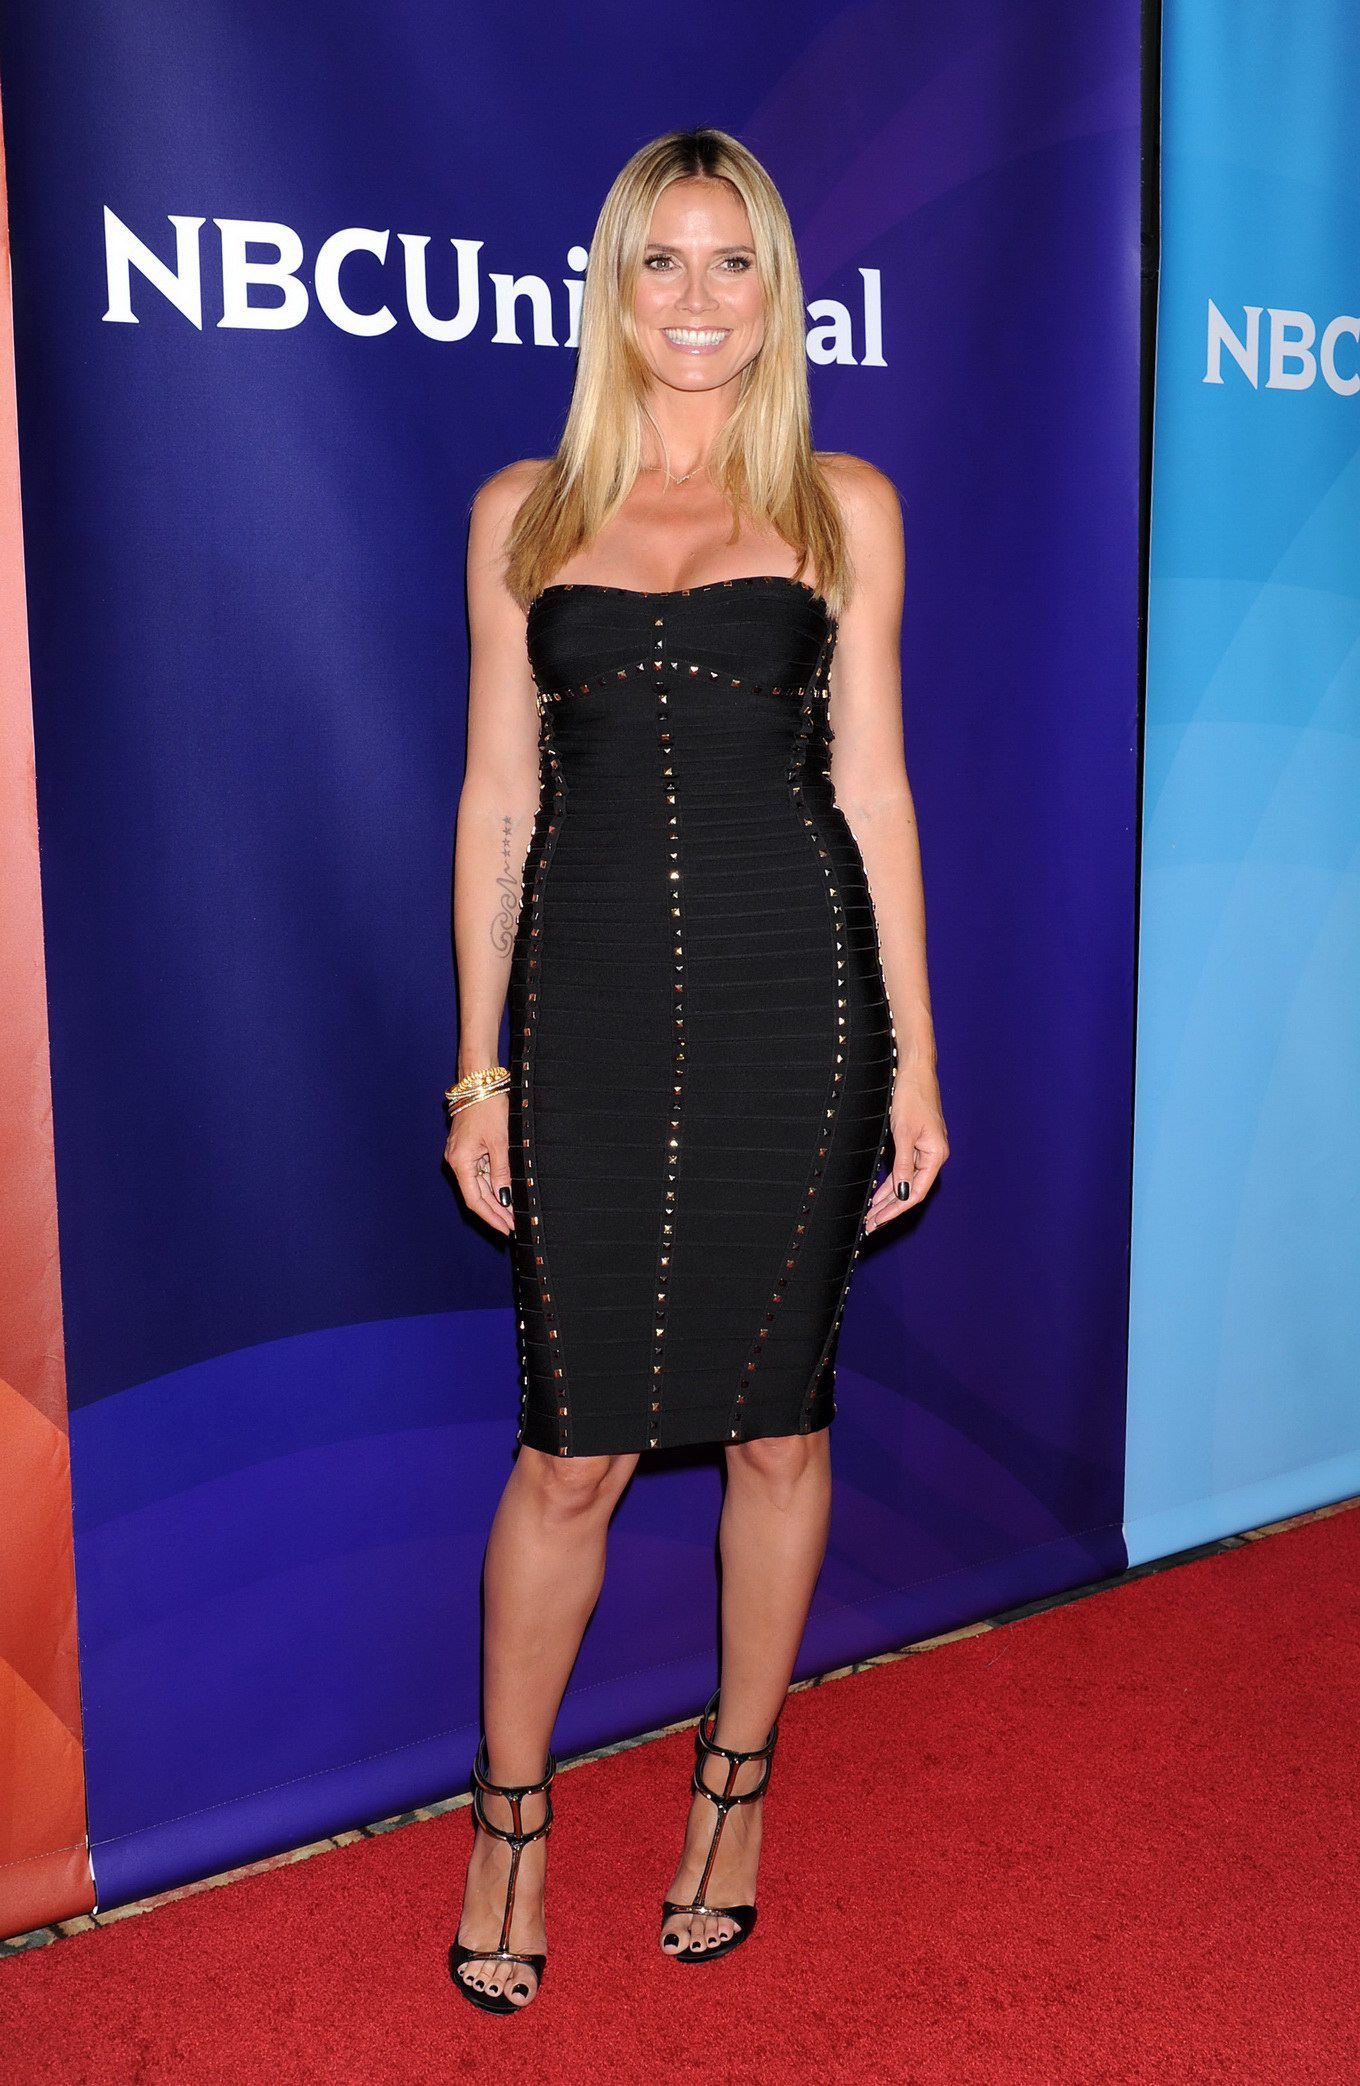 Heidi Klum Cleavy Wearing A Strapless Black Dress At The -3908